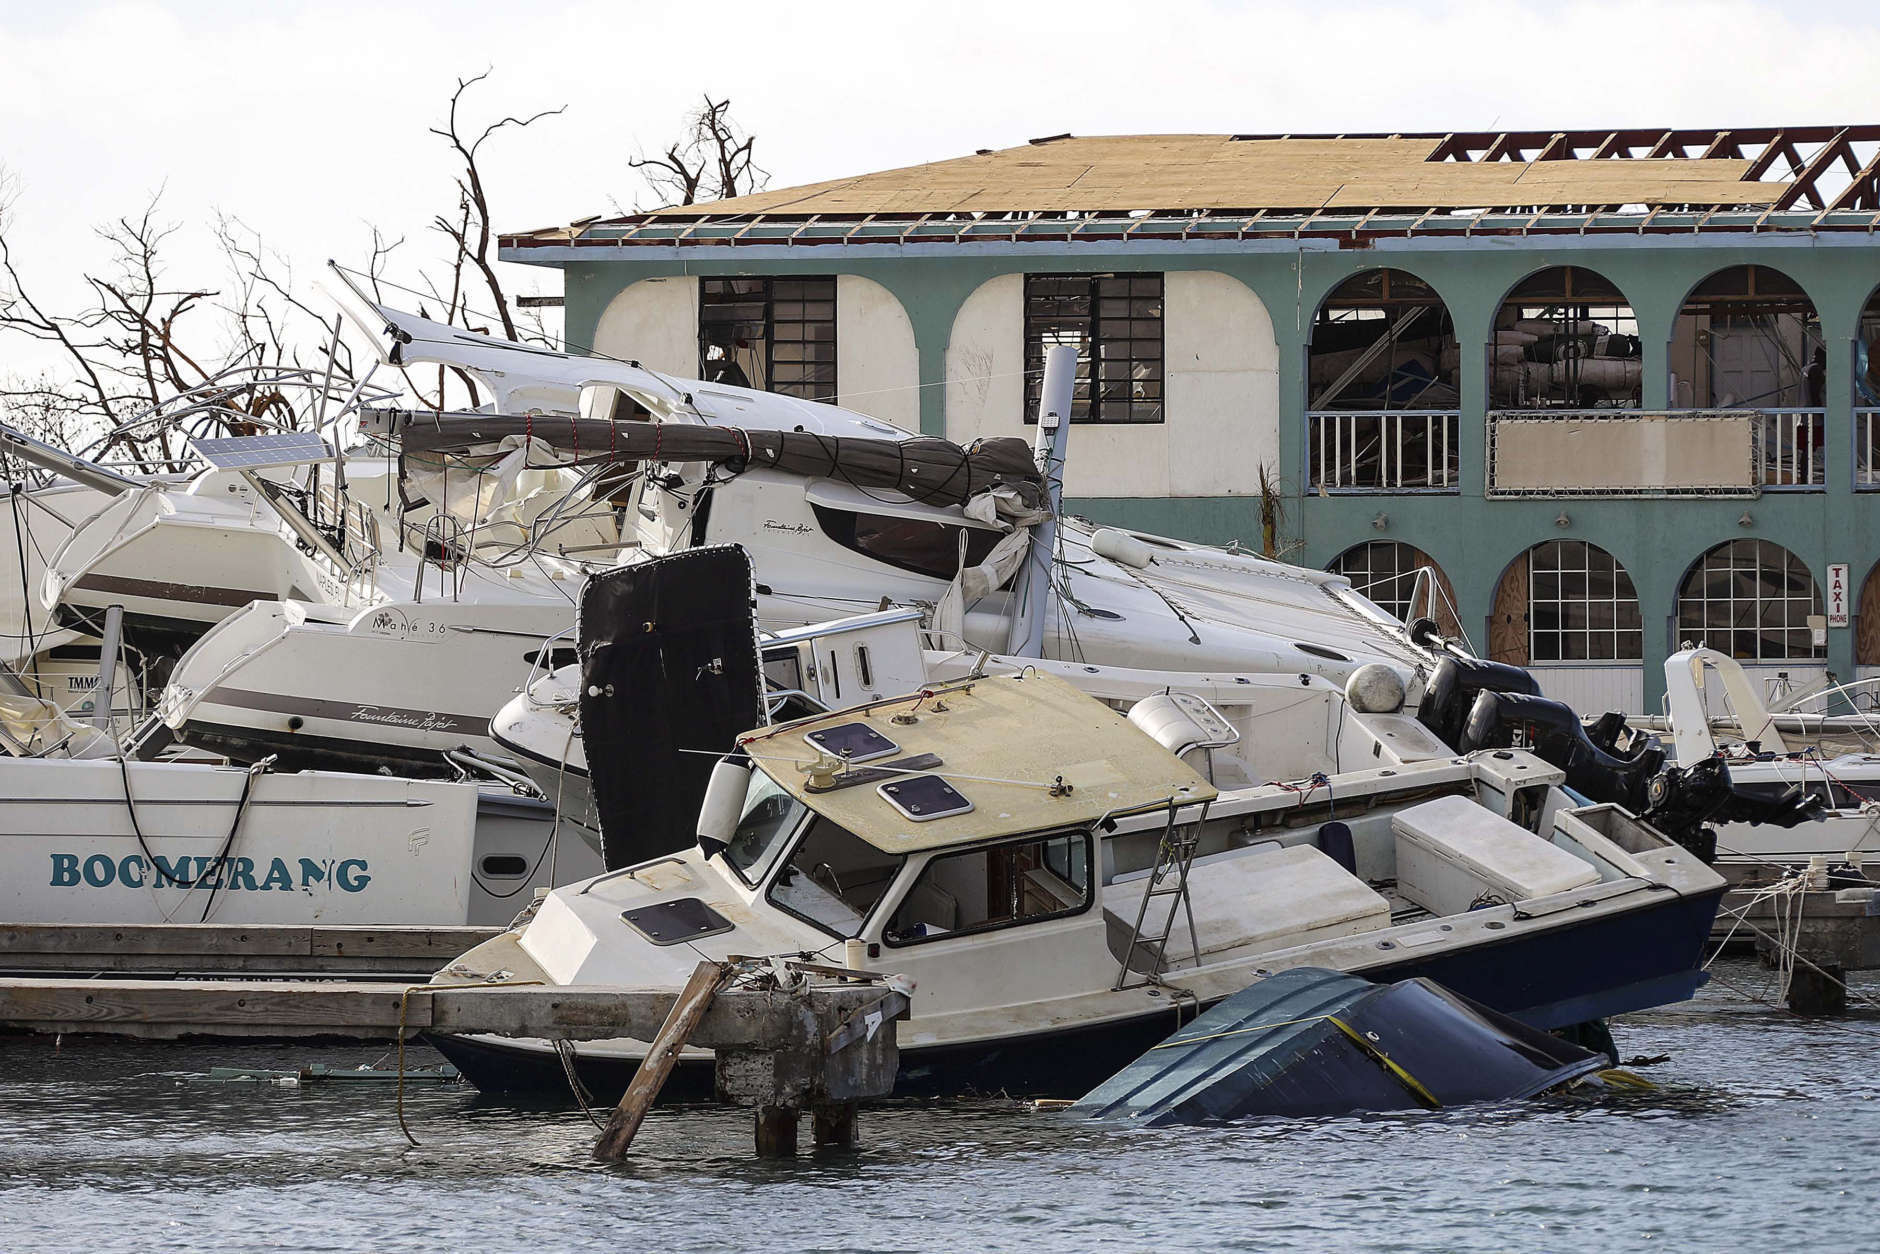 This undated photo provided on Sunday Sept. 10, 2017 by the British Ministry of Defence, shows the destruction in Road Town, Tortola, British Virgin Islands left by Hurricane Irma. The death toll from Hurricane Irma has risen to 22 as the storm continues its destructive path through the Caribbean. (Joel Rouse/MOD via AP)